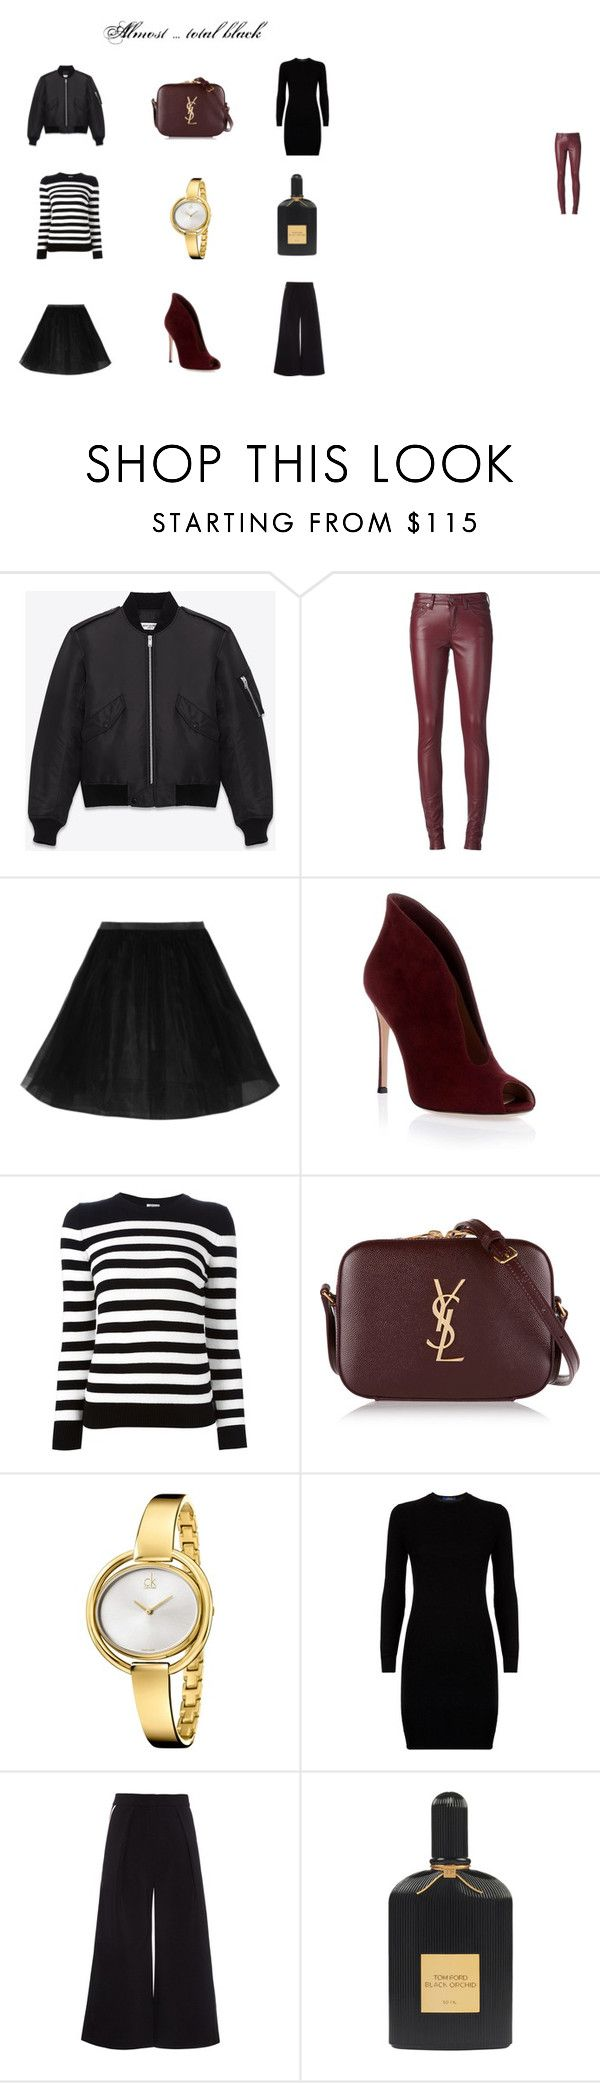 """""""Almost ... total black"""" by mousouza on Polyvore featuring Yves Saint Laurent, Gianvito Rossi, Calvin Klein, Polo Ralph Lauren, Roksanda and Tom Ford"""